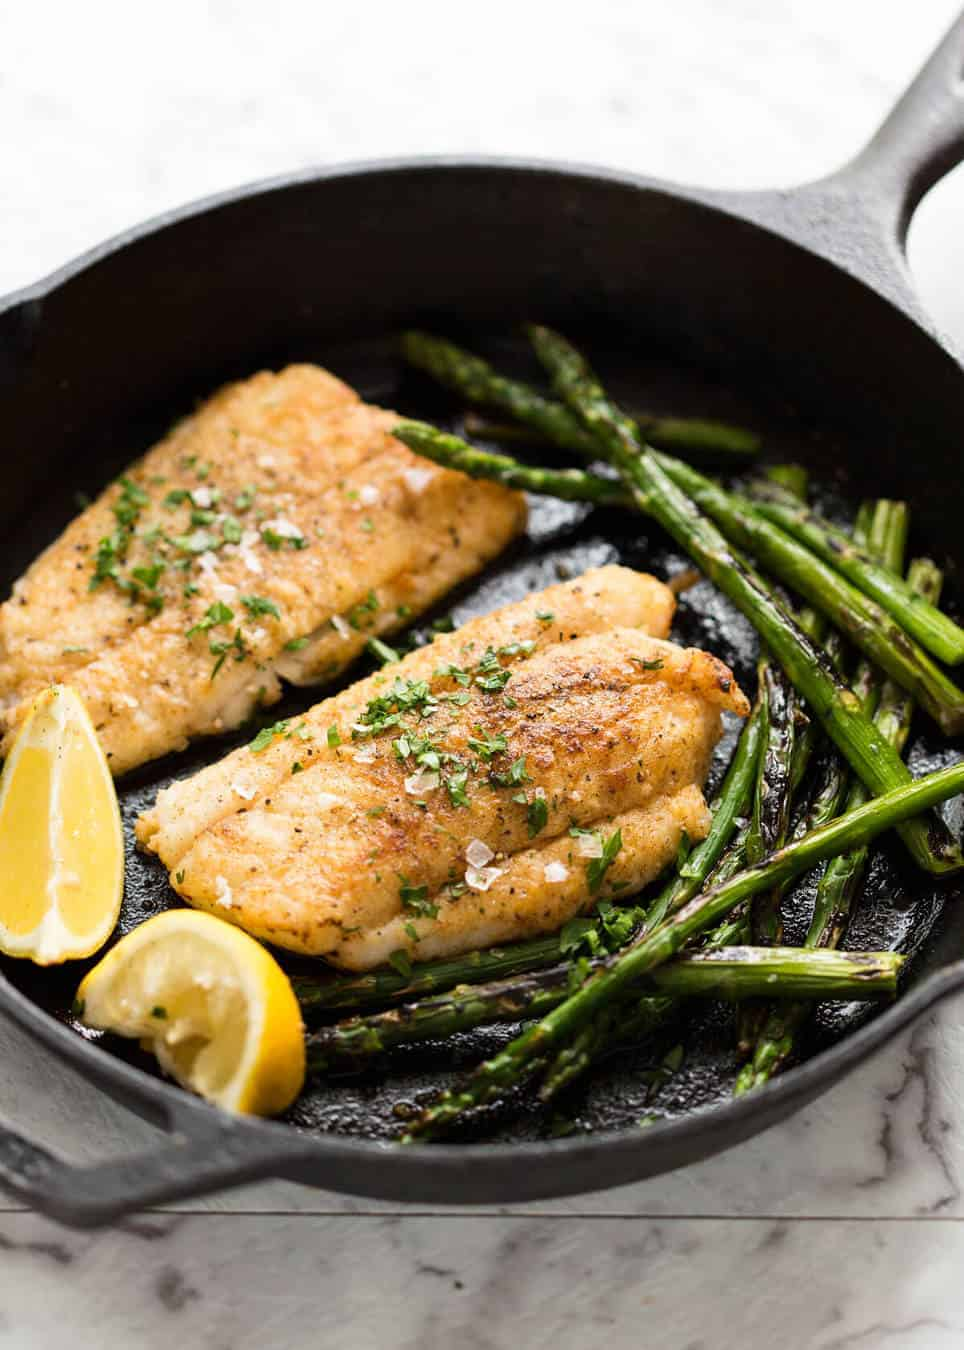 Making Crispy Pan Fried Fish without deep frying is simple - and so good! recipetineats.com